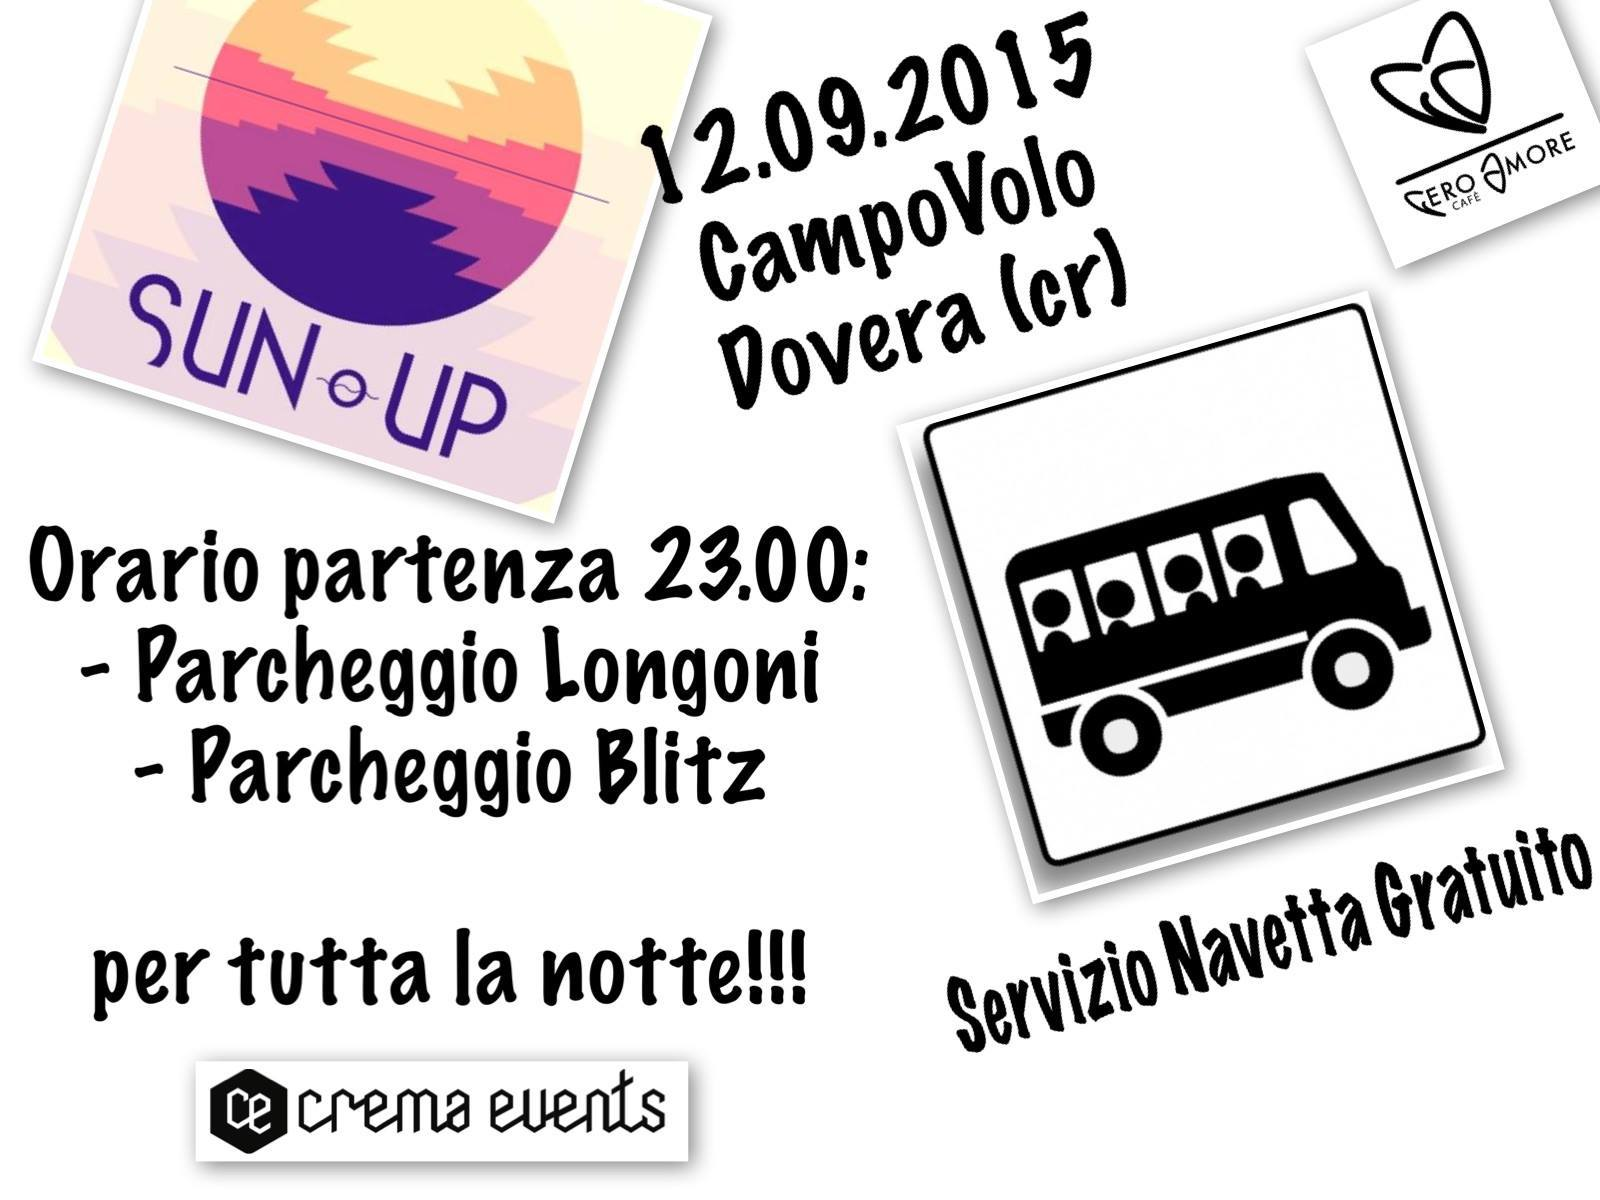 locandina.sun-up cremaevents